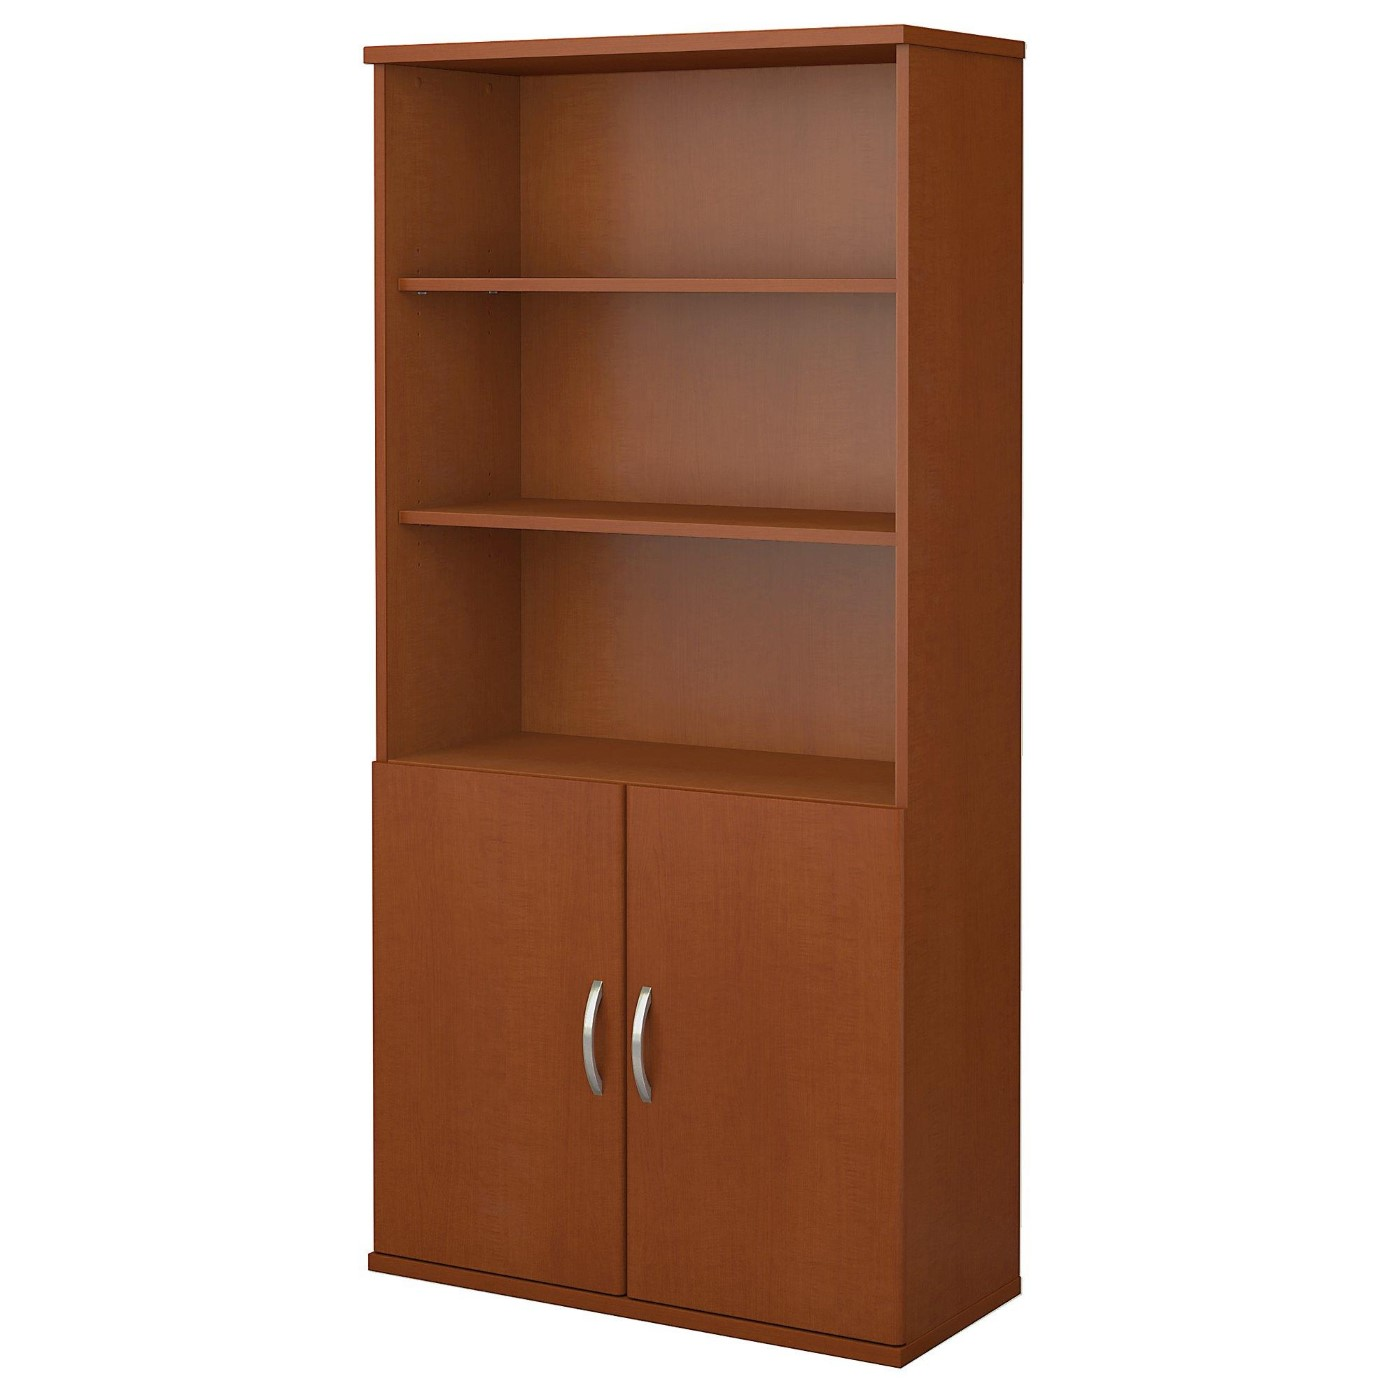 <font color=#c60><b>BUSH BUSINESS FURNITURE SERIES C 36W 5 SHELF BOOKCASE WITH DOORS. FREE SHIPPING</font></b></font></b>